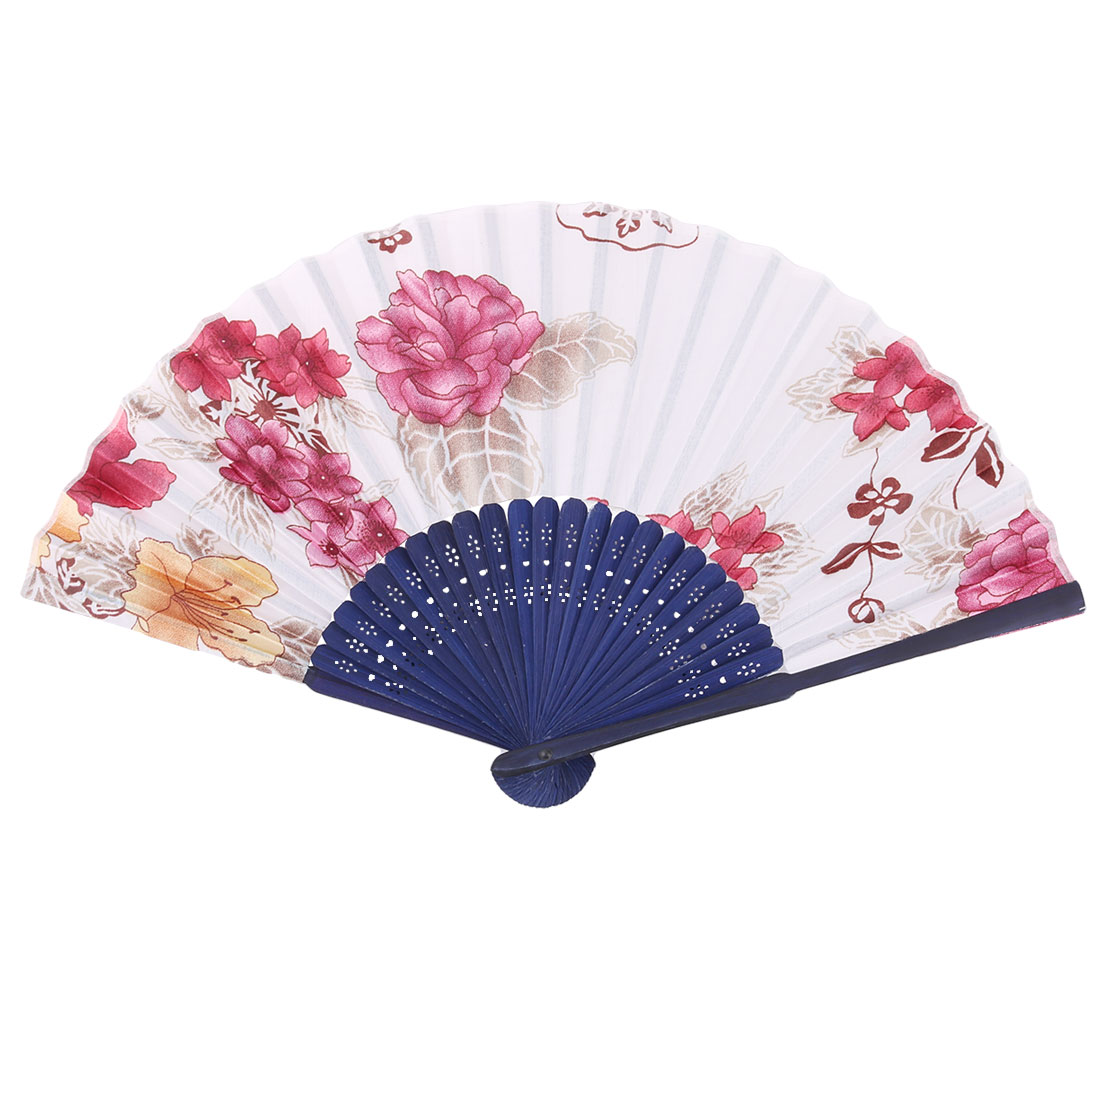 Lady Wedding Bamboo Frame Flower Pattern Folding Cooling Dancing Hand Fan Fuchsia